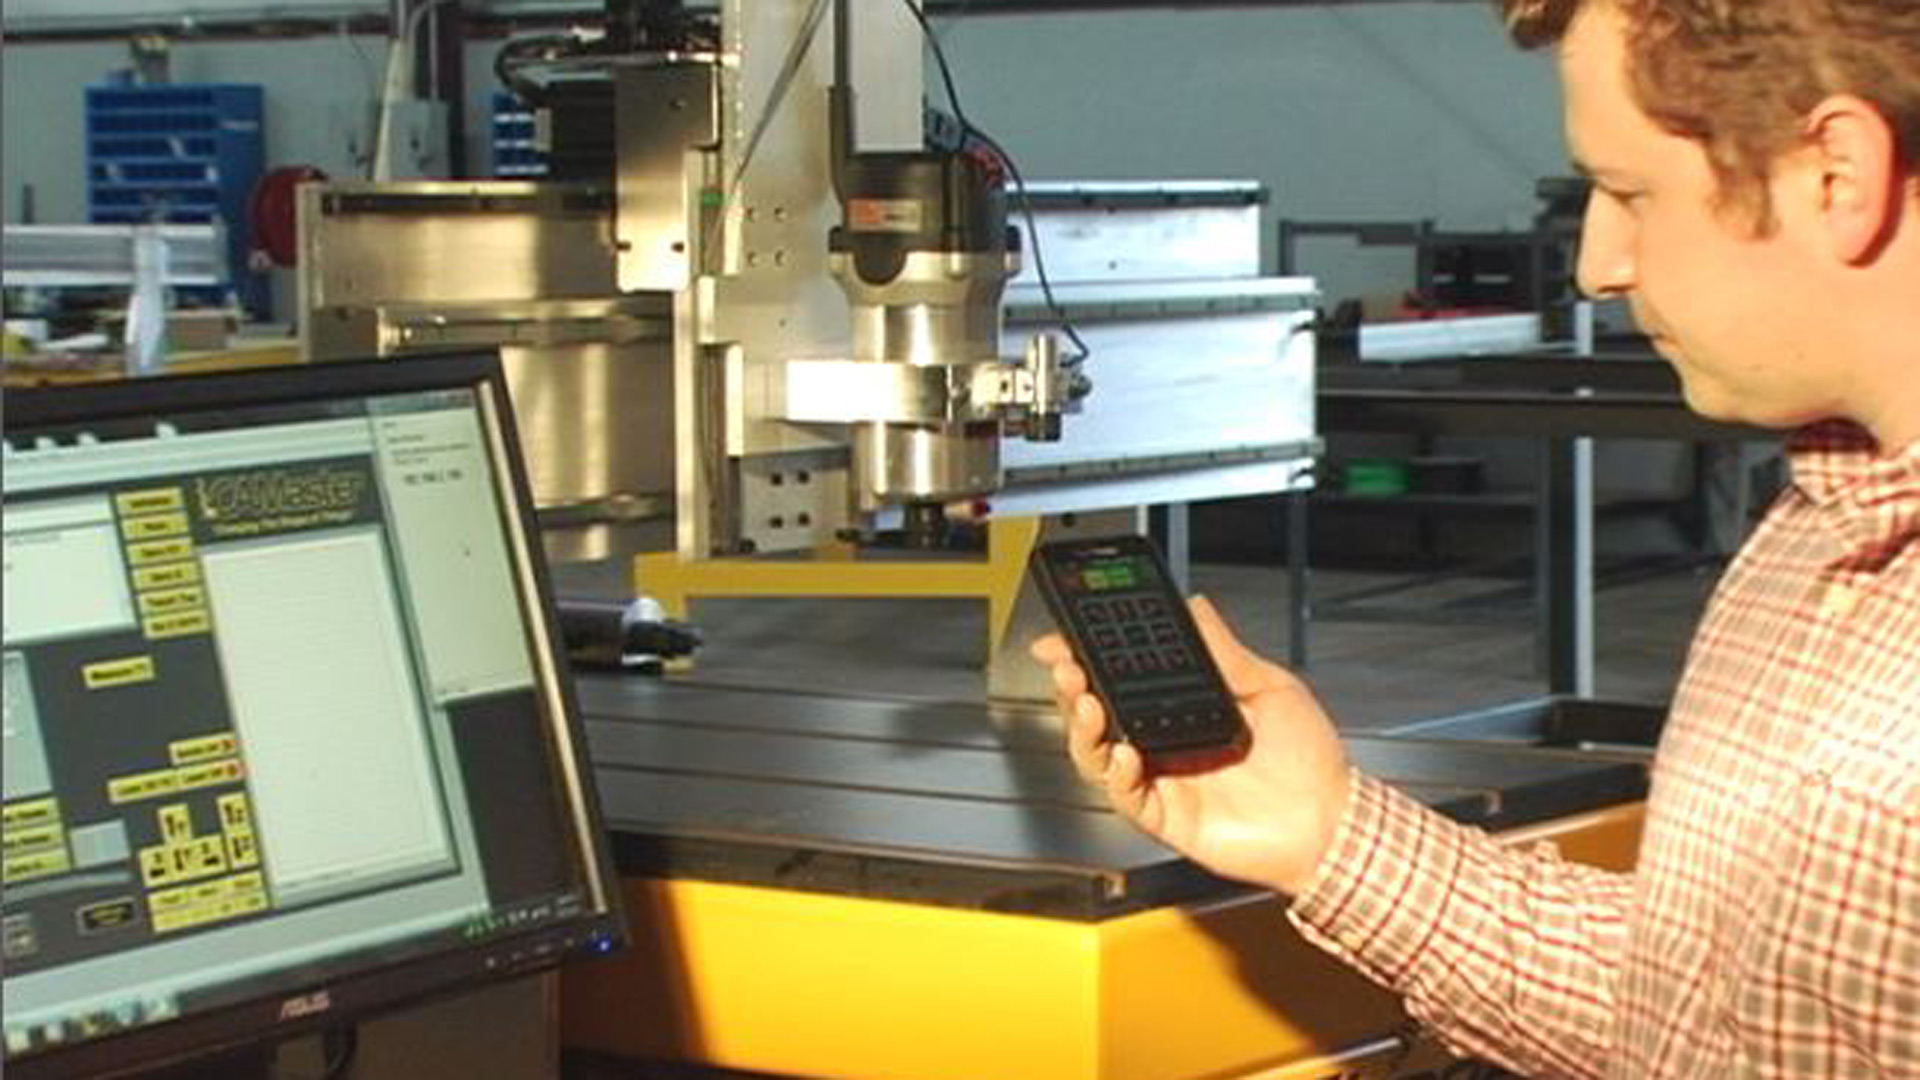 Machine operator using WincncTouch to control a cnc router from his iOS or Android mobile device.